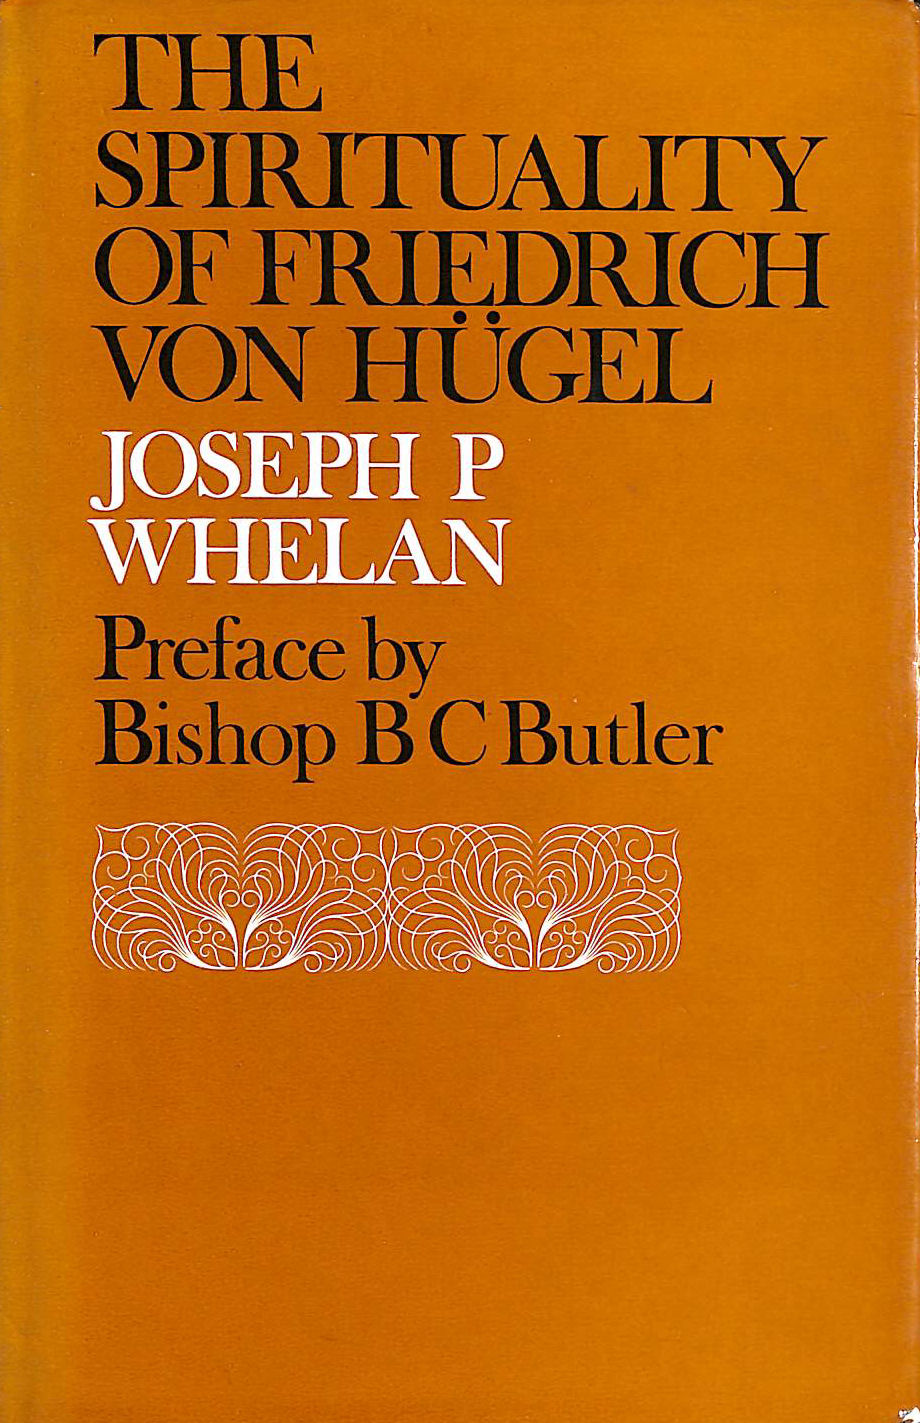 Image for Spiritual Doctrine of Friedrich Von Hugel